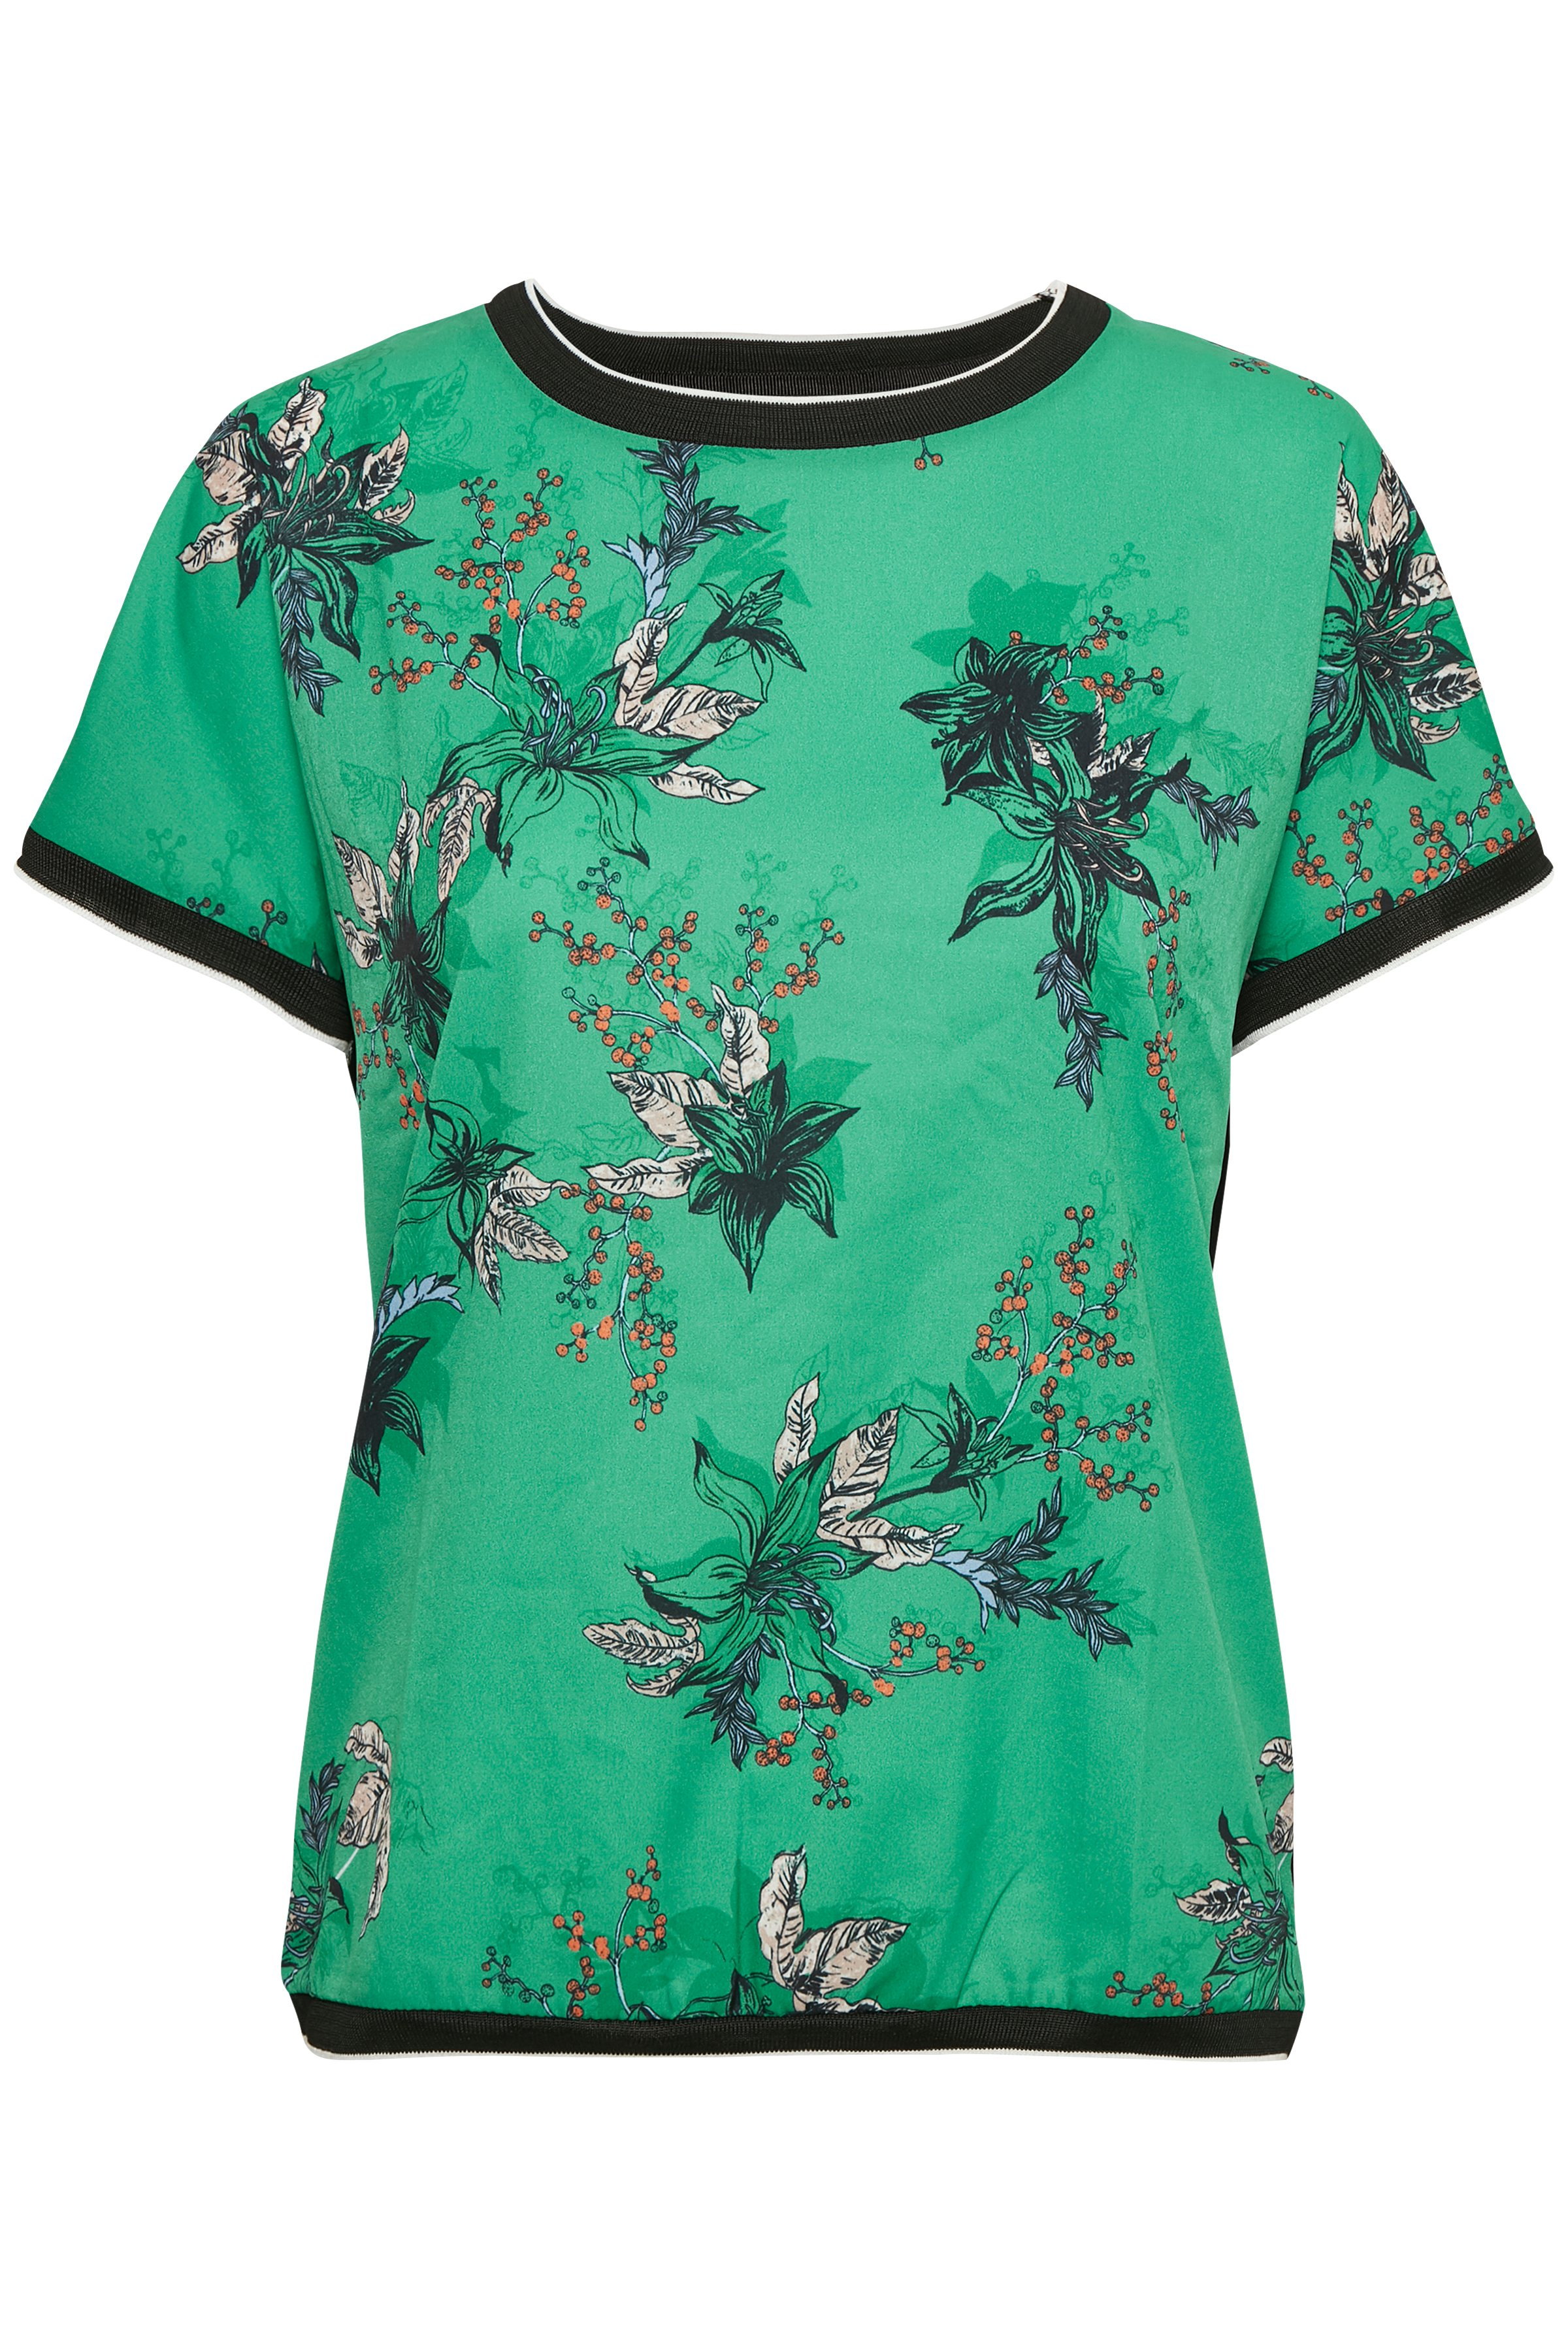 Fresh green combi 1 T-shirt from b.young – Buy Fresh green combi 1 T-shirt from size XS-XXL here